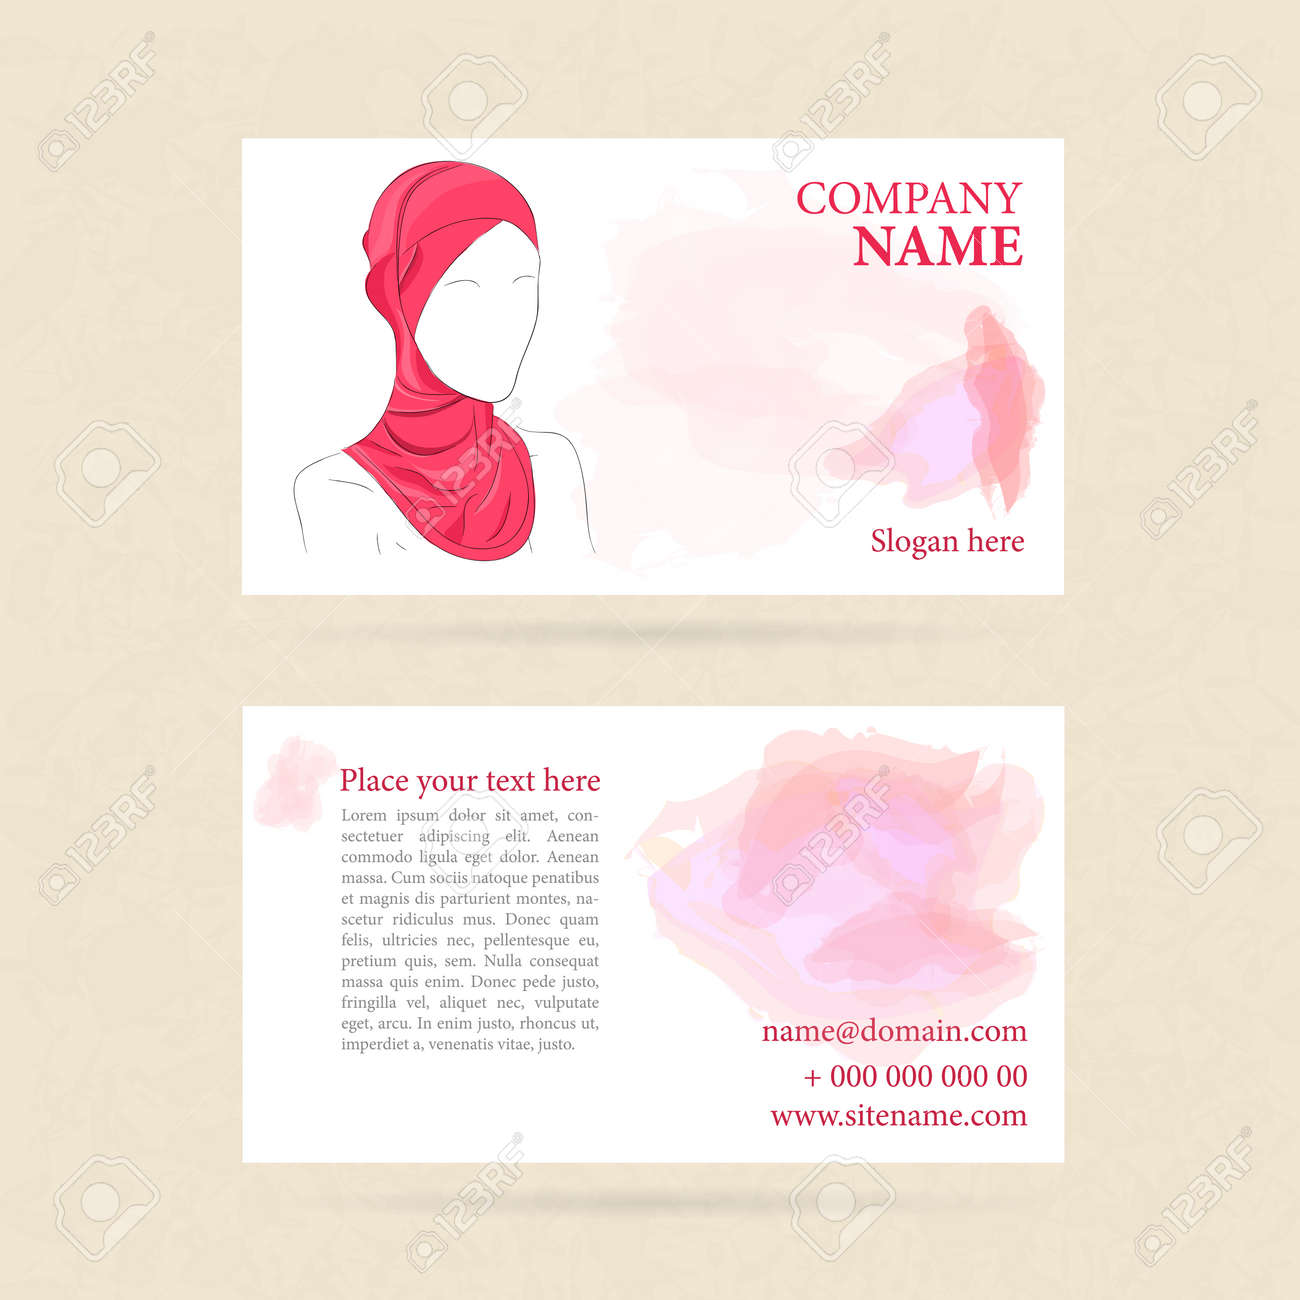 Illustration Of Business Card With Woman In Turban Or Hijab Watercolor On Background Template